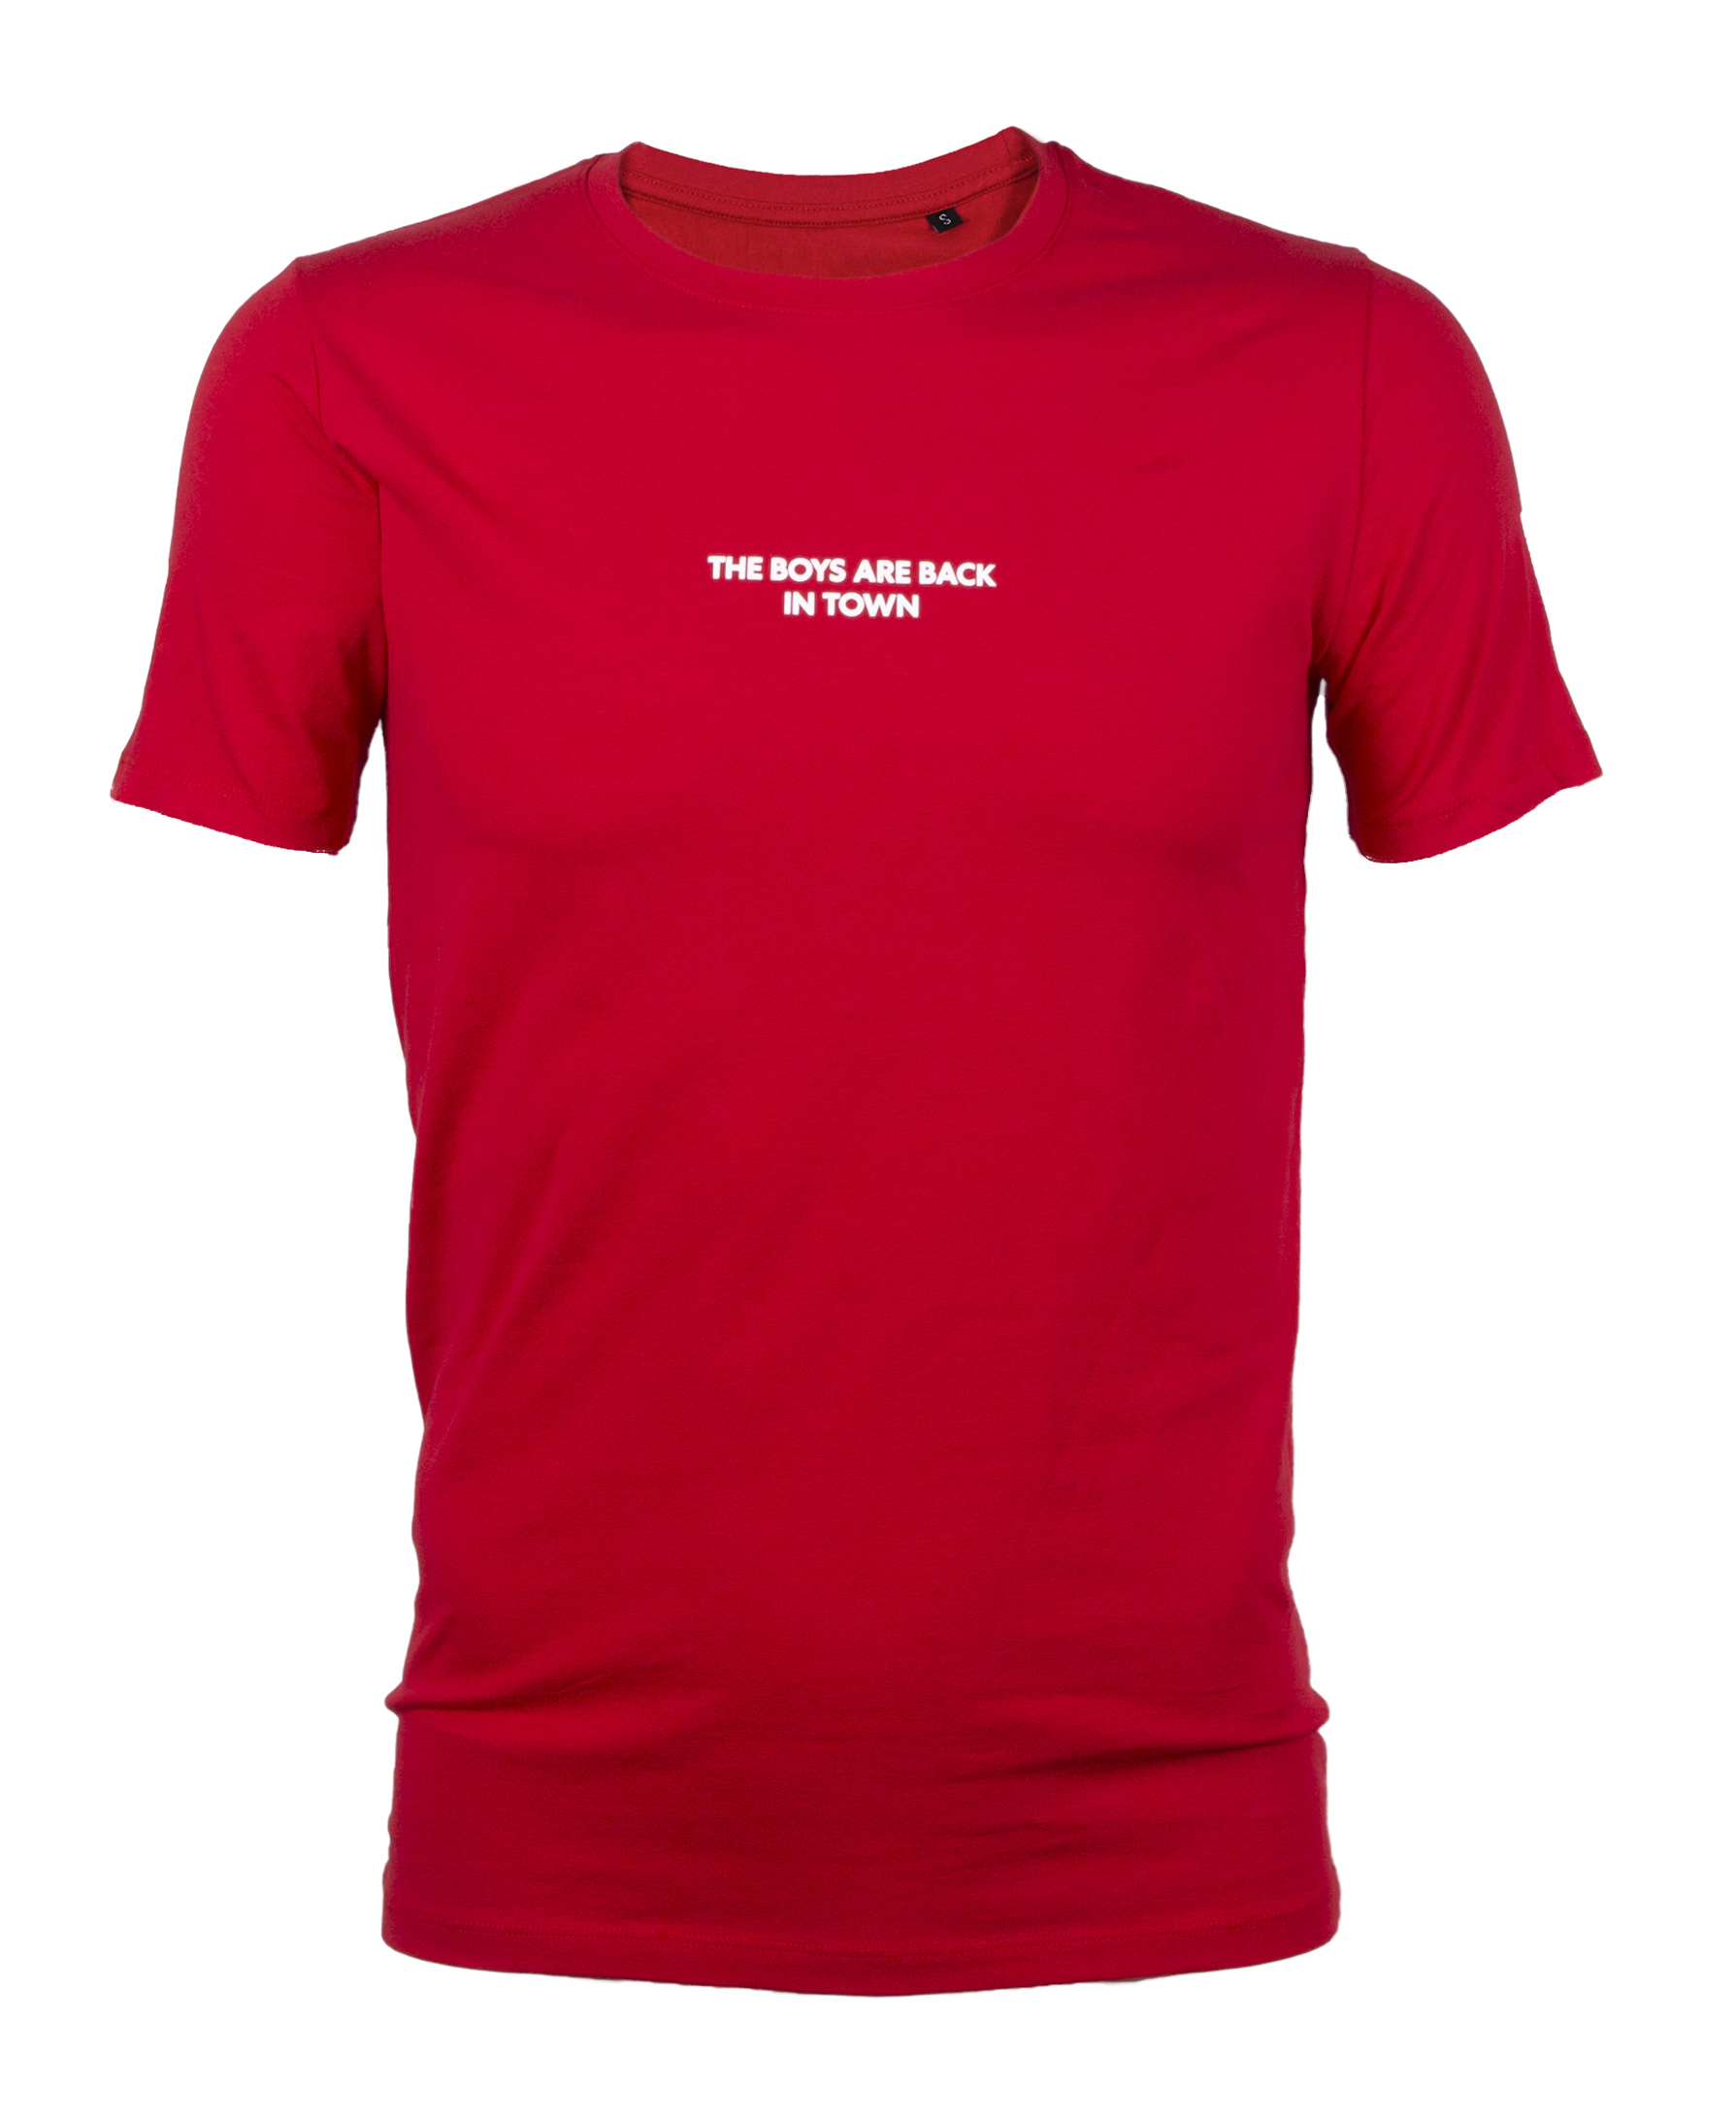 Boys are back t-shirt rood